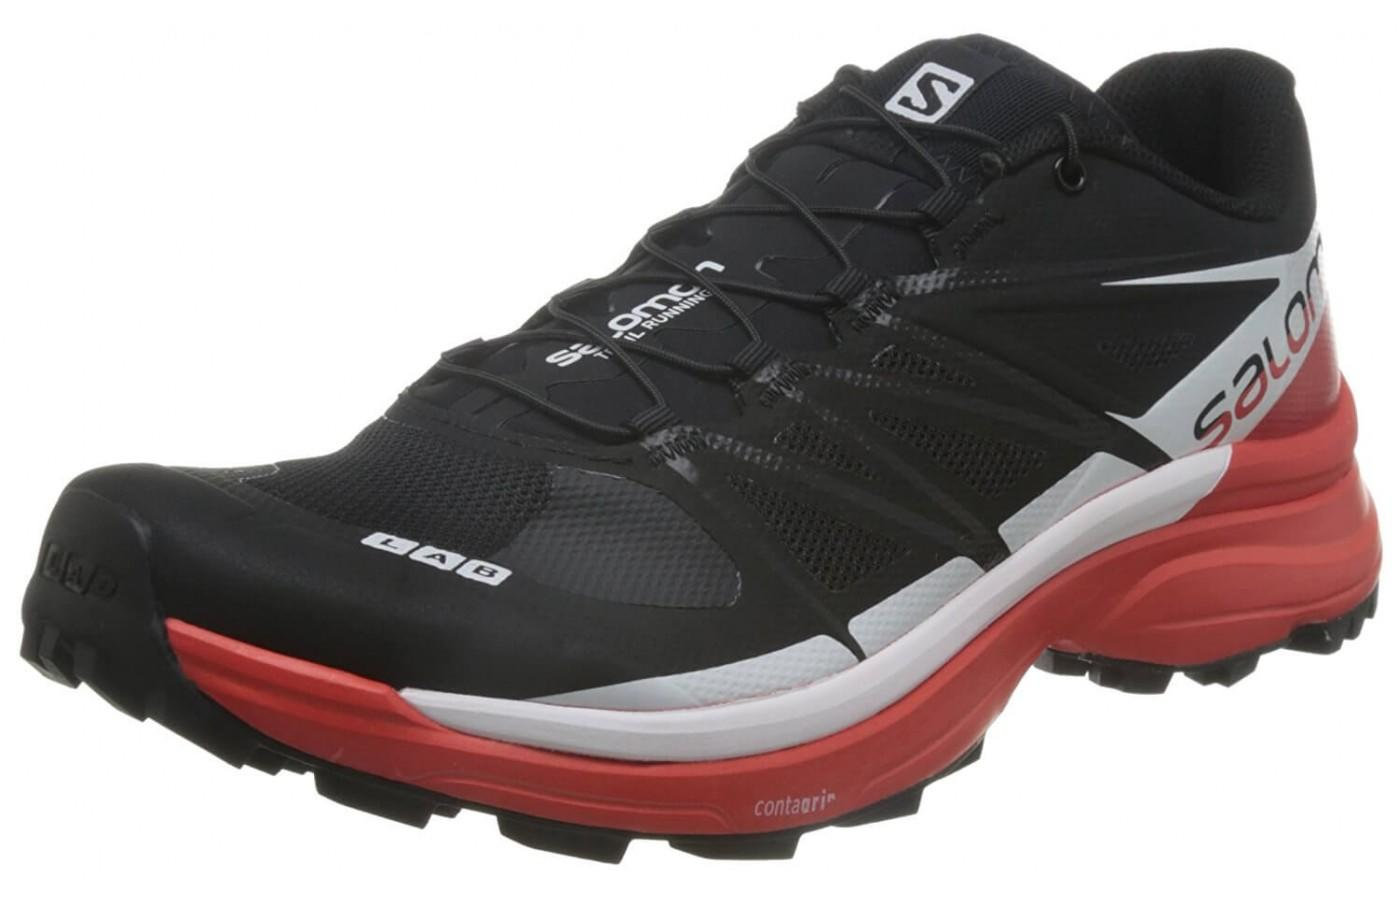 Salomon S-Lab Wings 8 SG features a toe bumper for protection